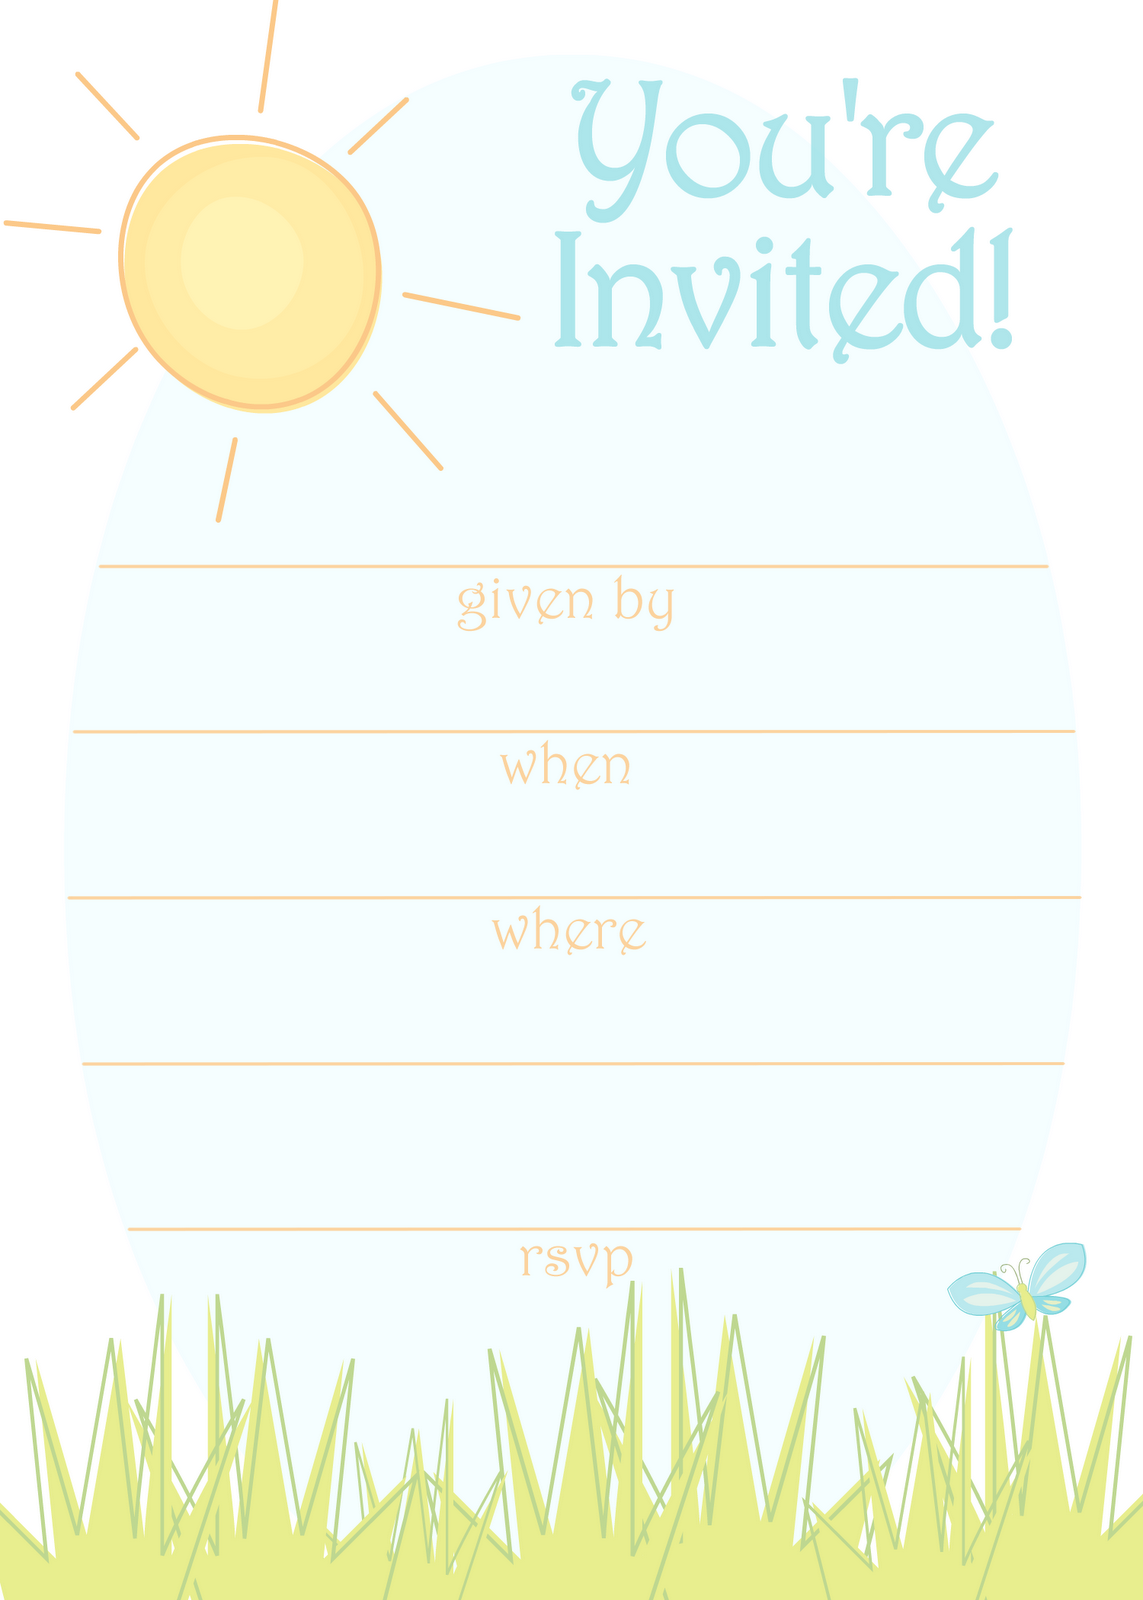 Sunny Day Invitation for a Summer Party | Cards | Pinterest